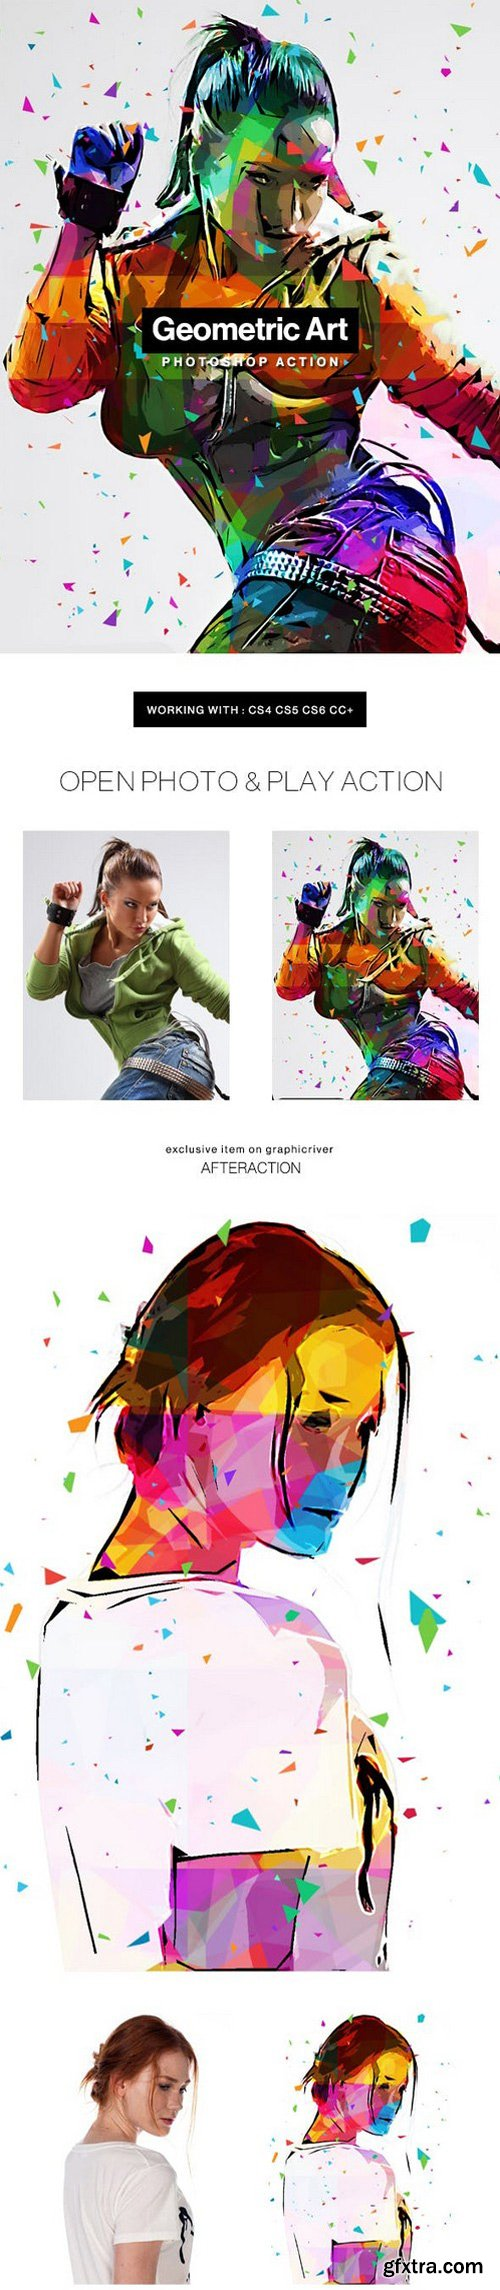 Graphicriver - Geometric Art Photoshop Action 20543613